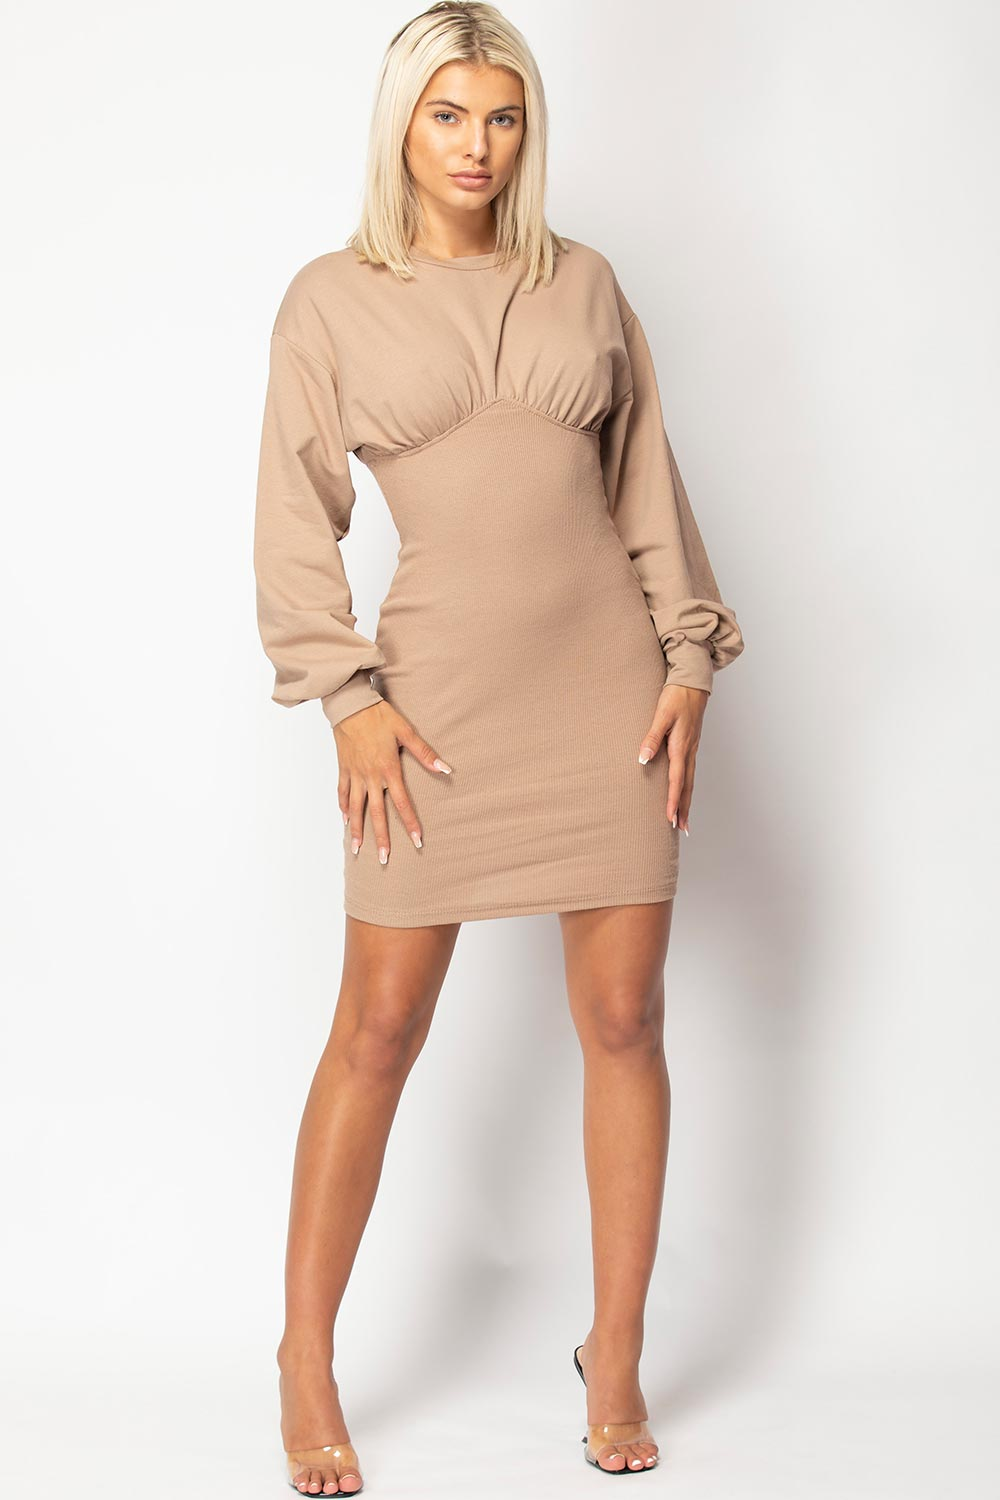 long sleeve bust detail dress